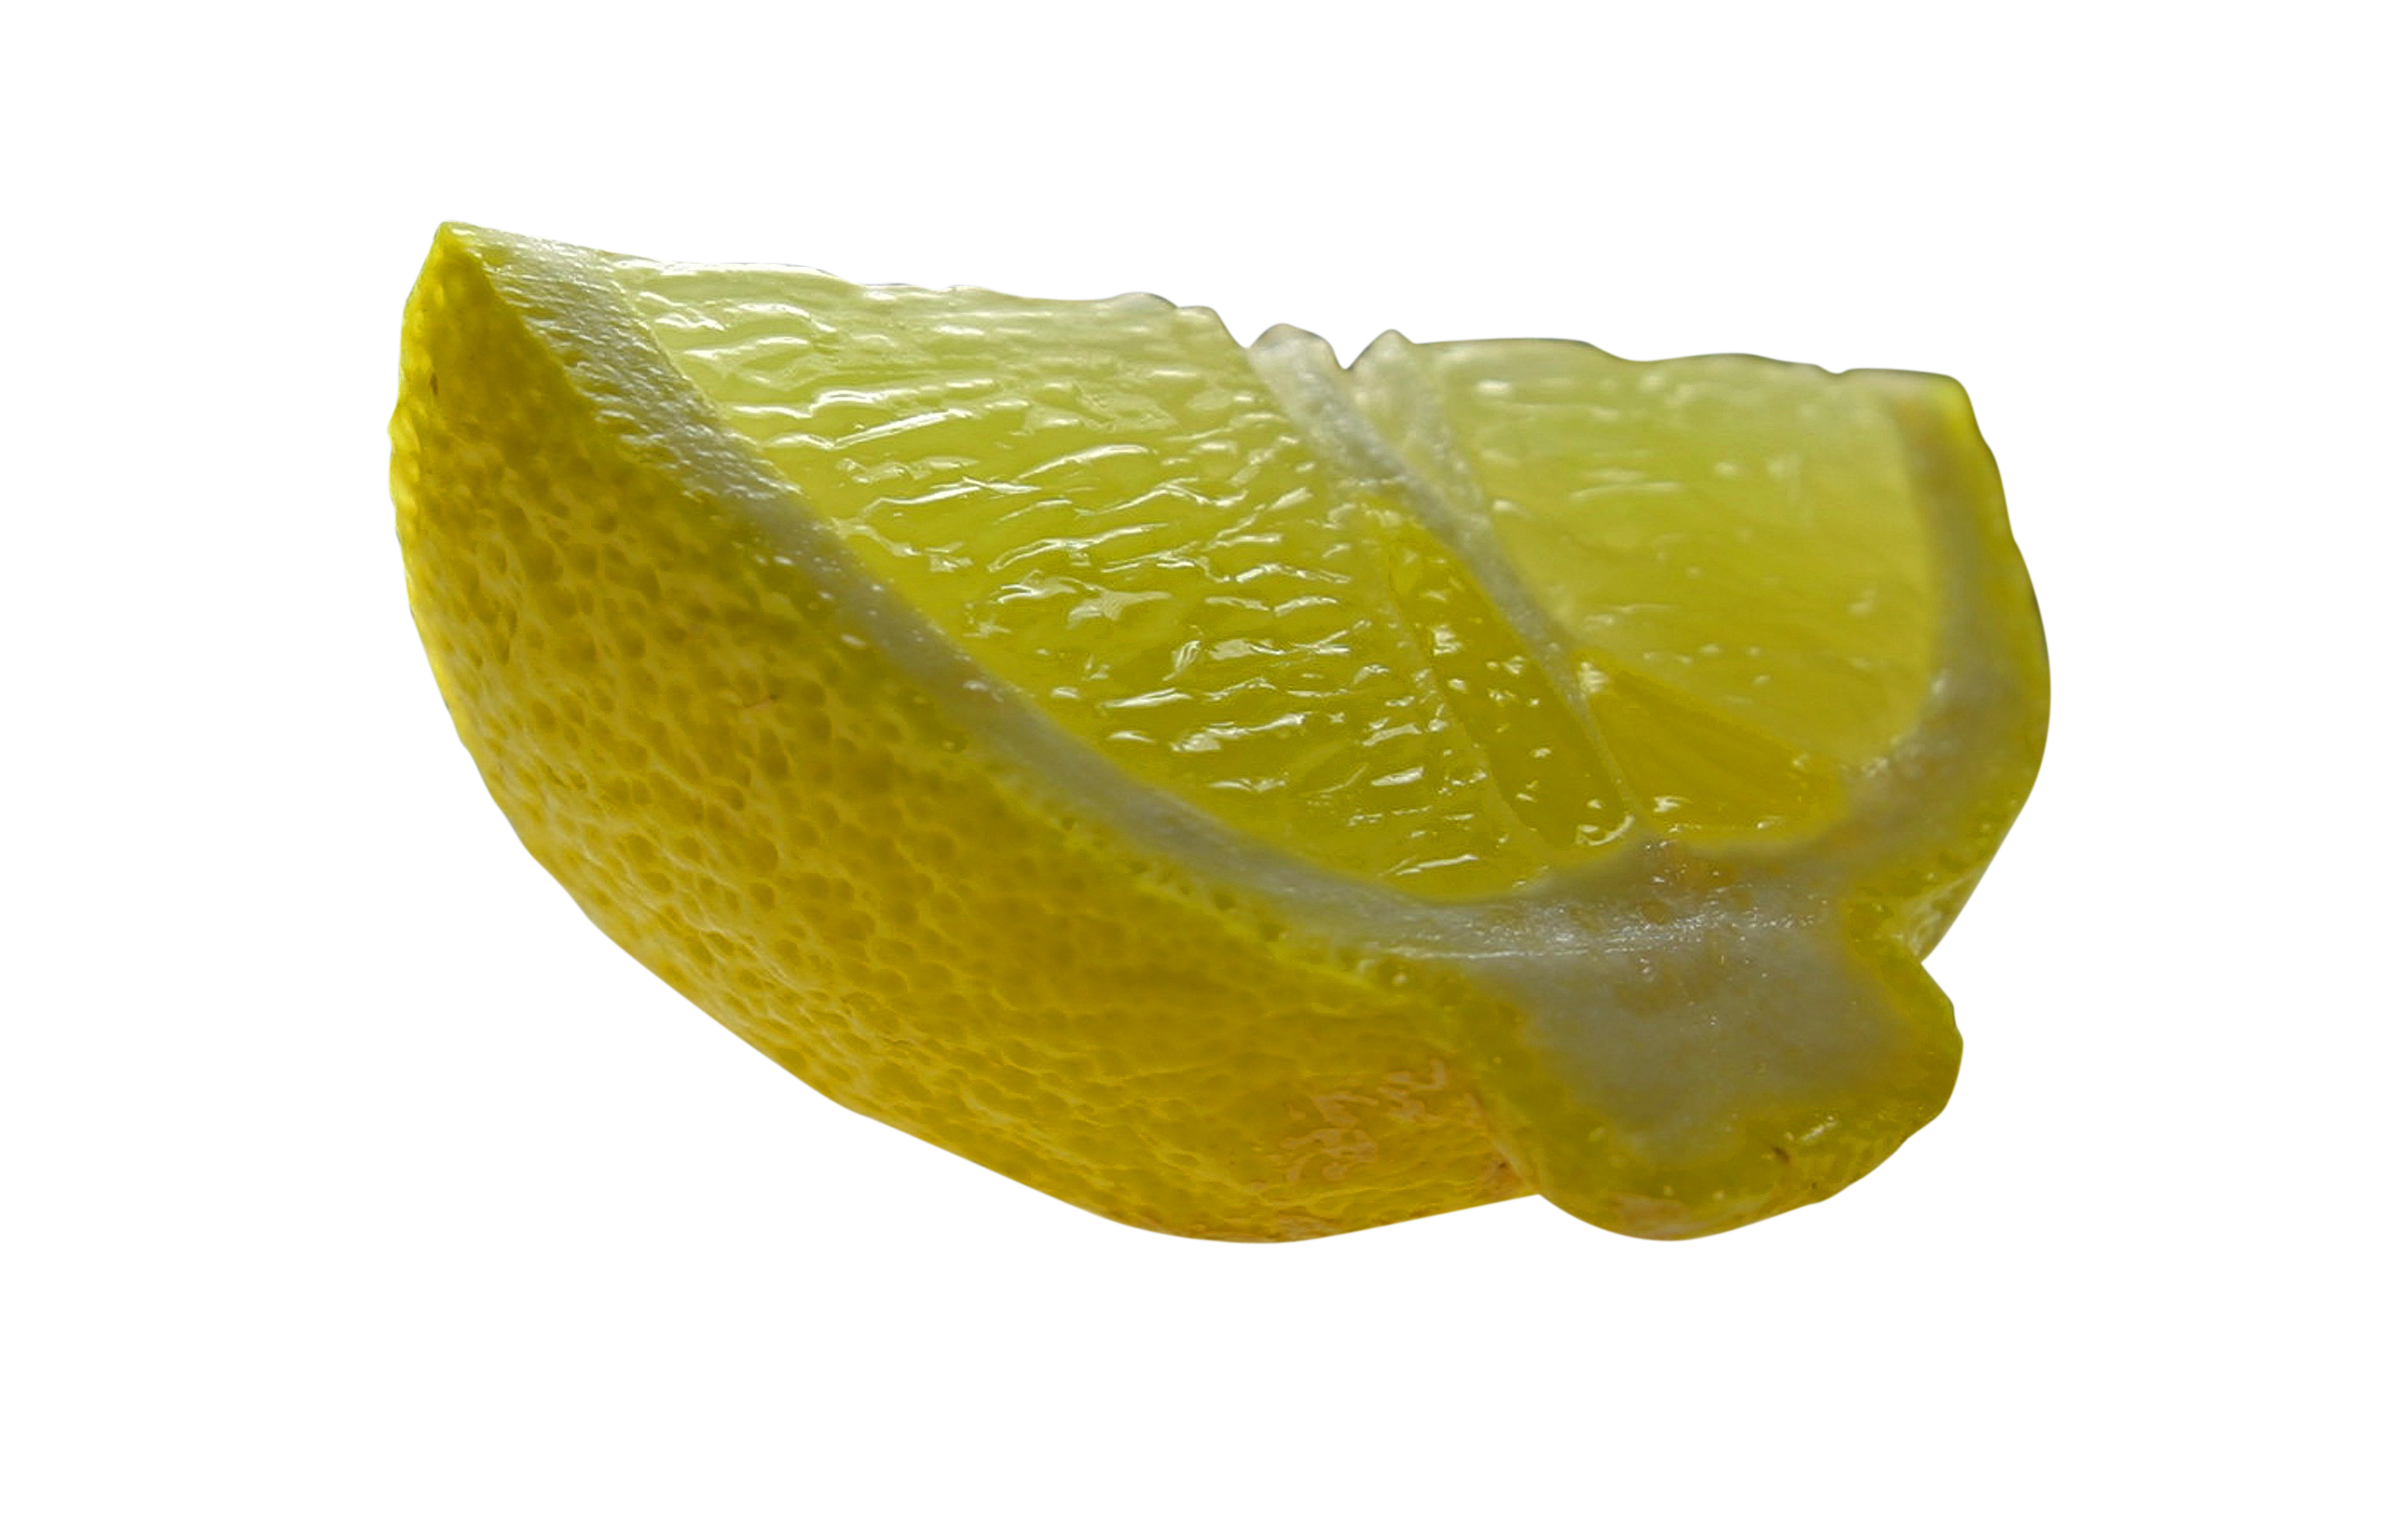 slice-of-lemon-953987_Clip